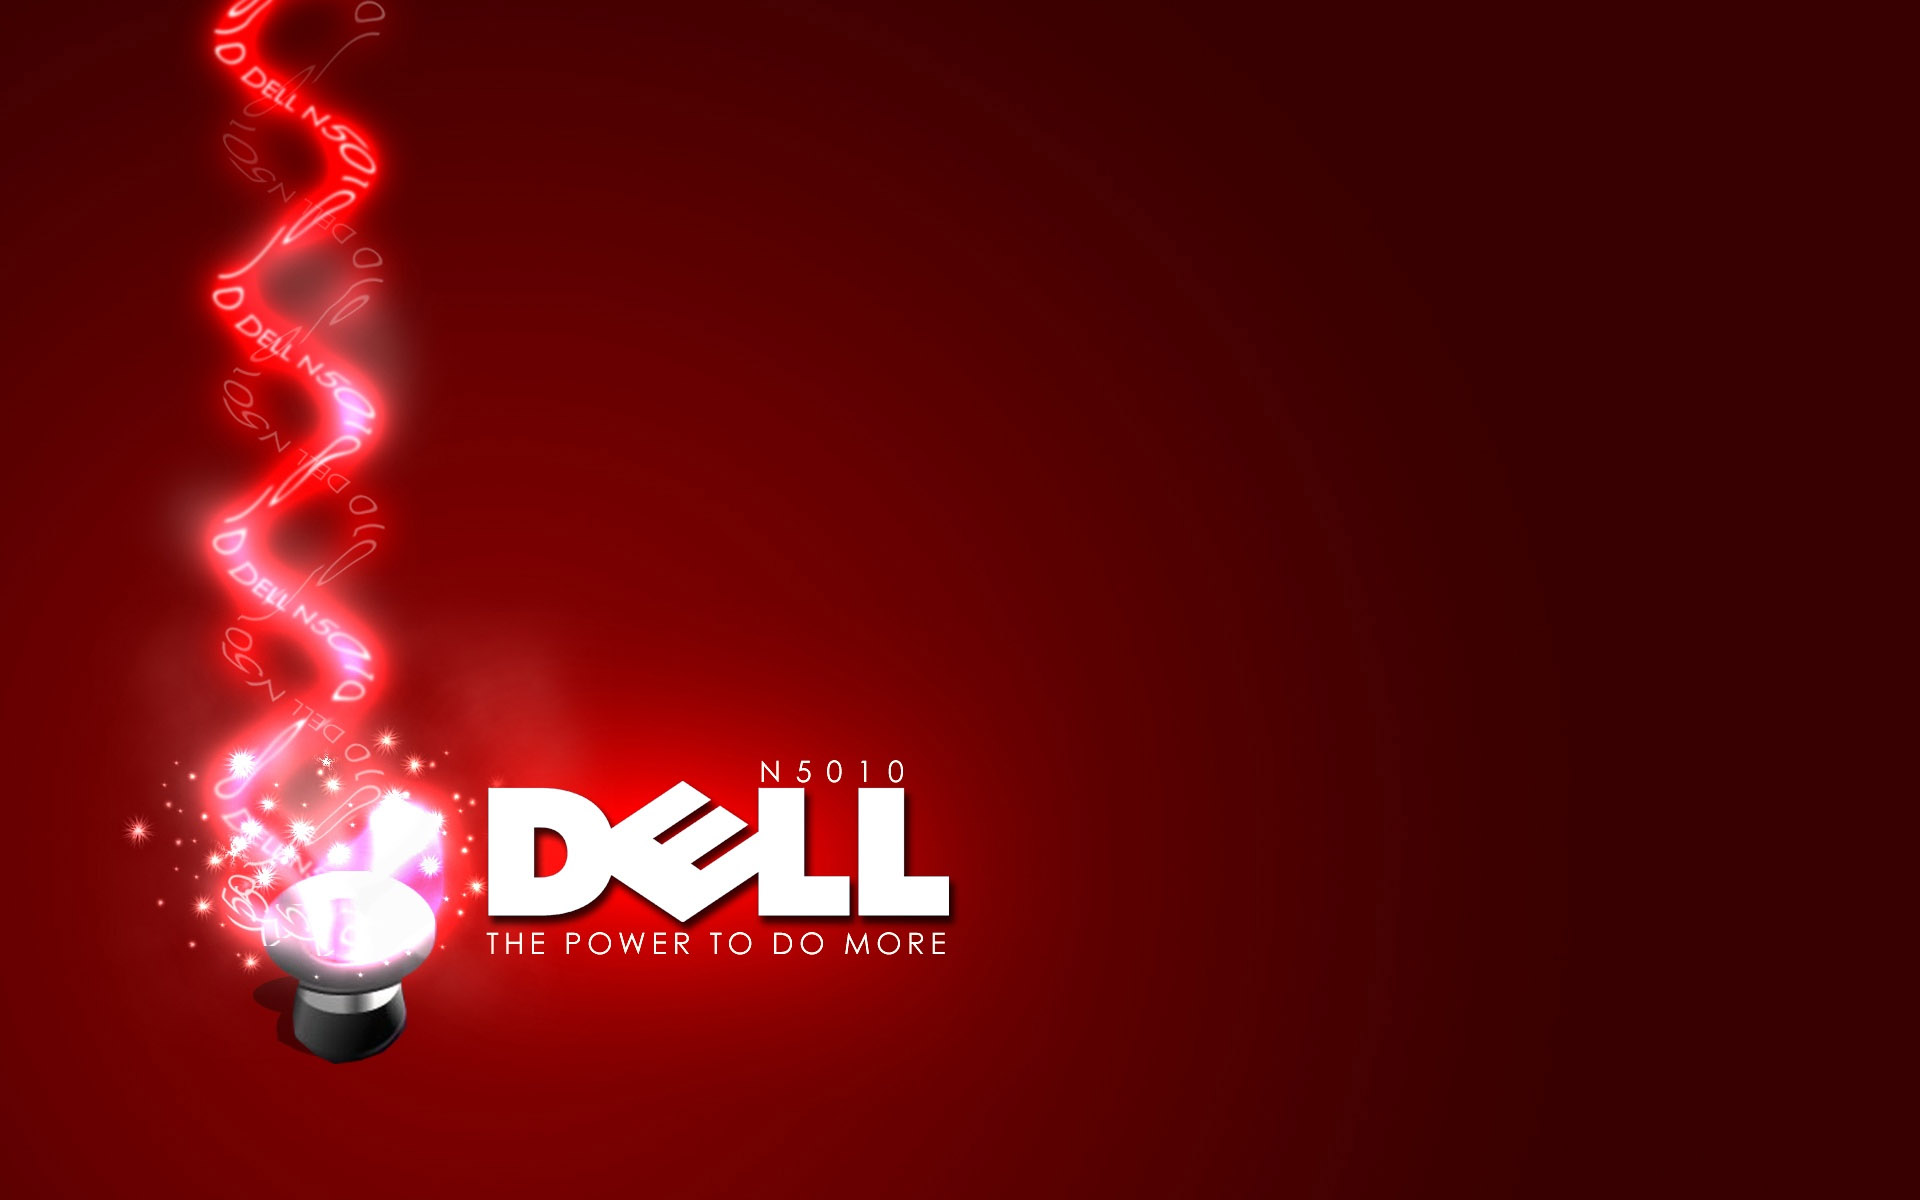 Dell Red HD wallpaper | HD Latest Wallpapers